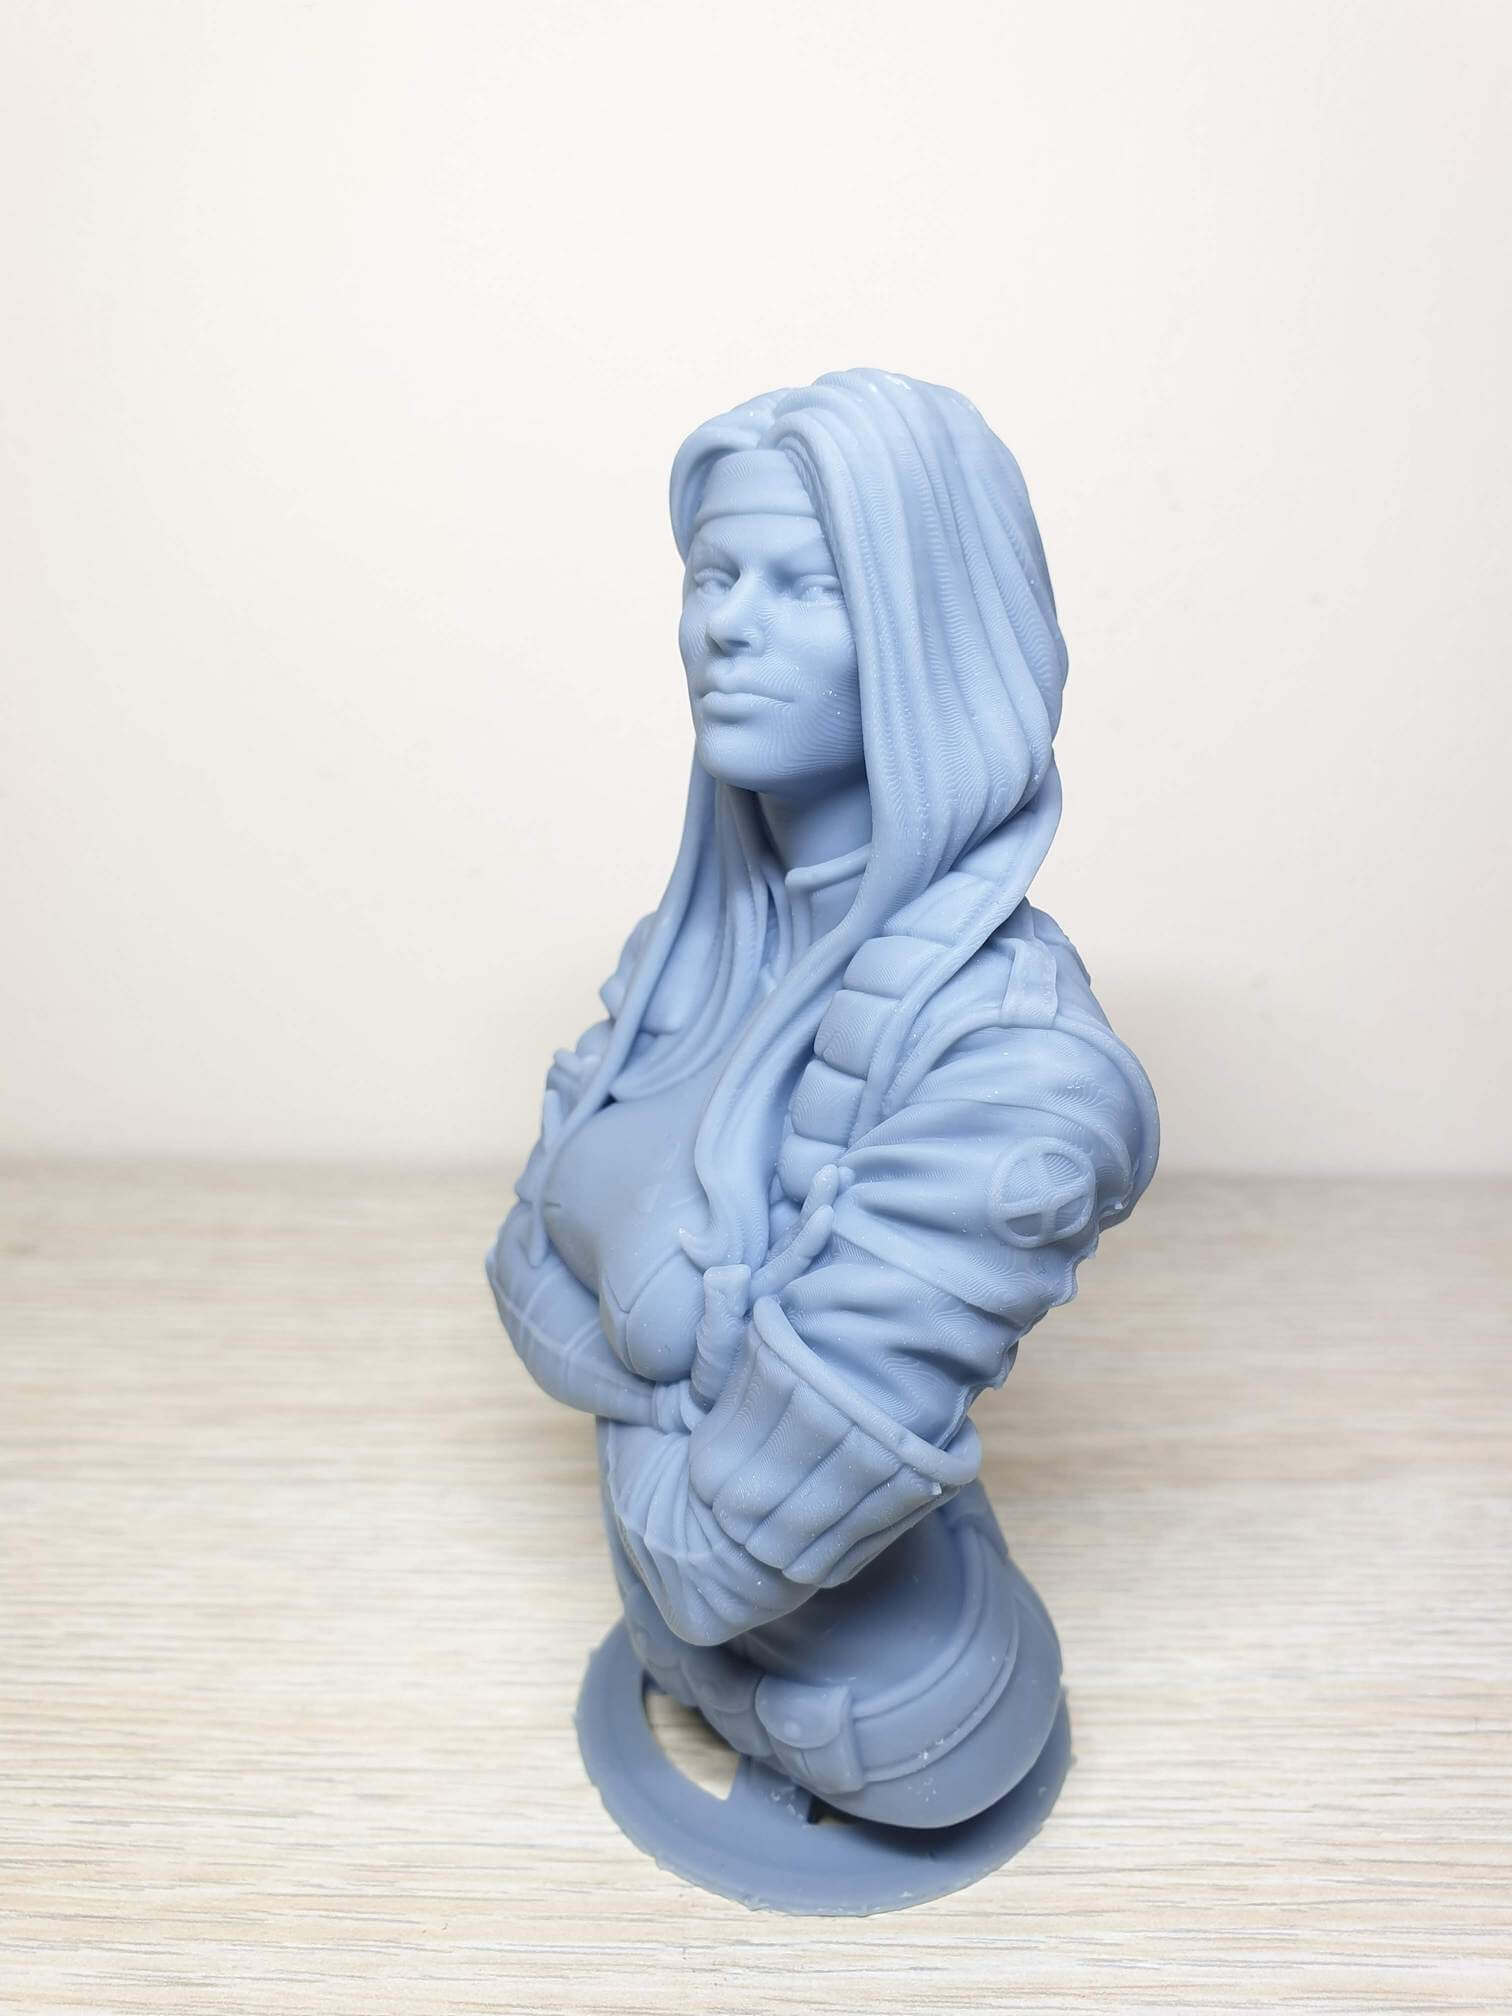 Rogue Bust Anycubic Photon Zero Review 3   Anycubic Photon Zero Review - Budget Resin Printer